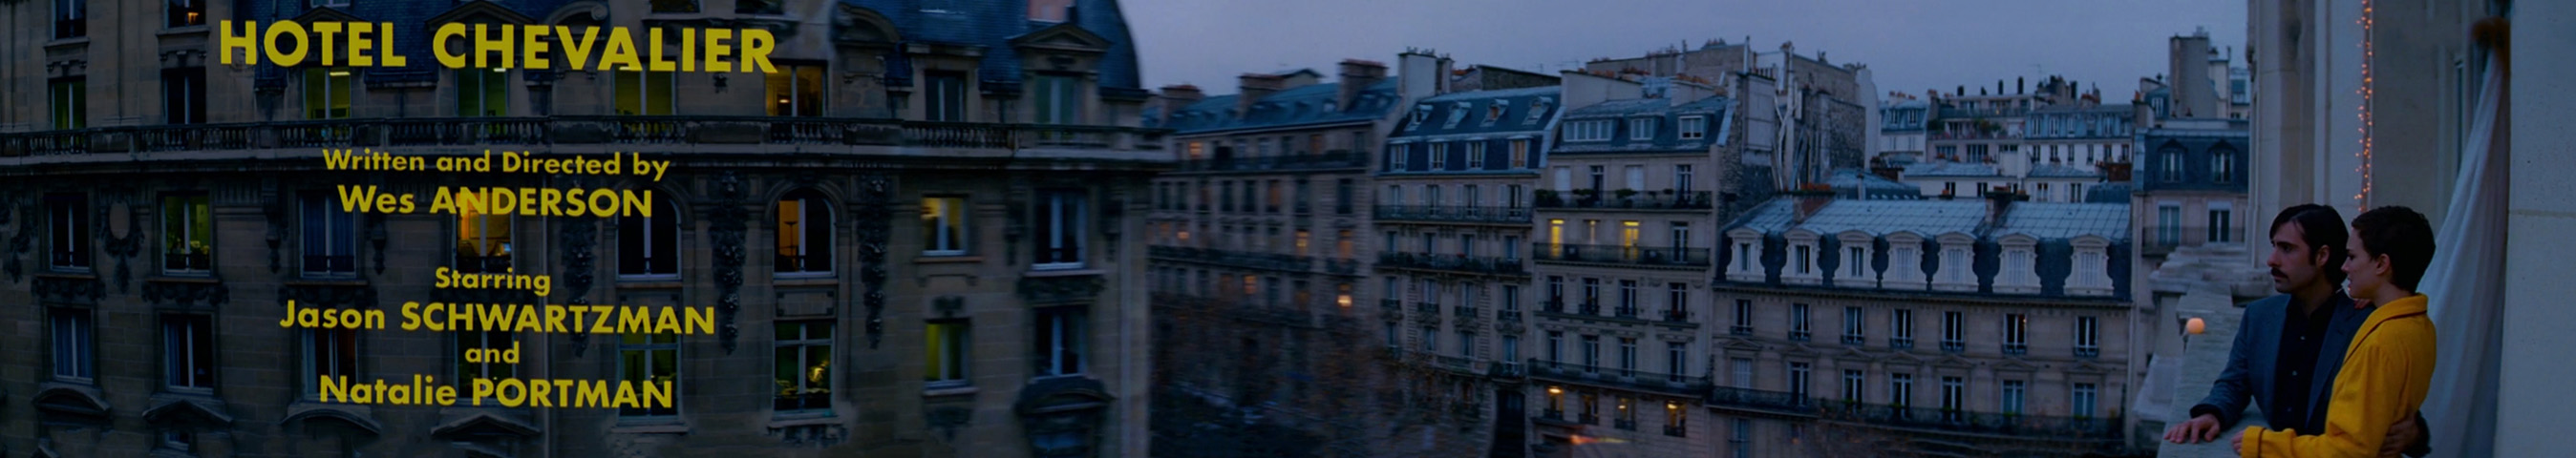 Hotel Chevalier Wes Anderson film panoramas wmiii 7